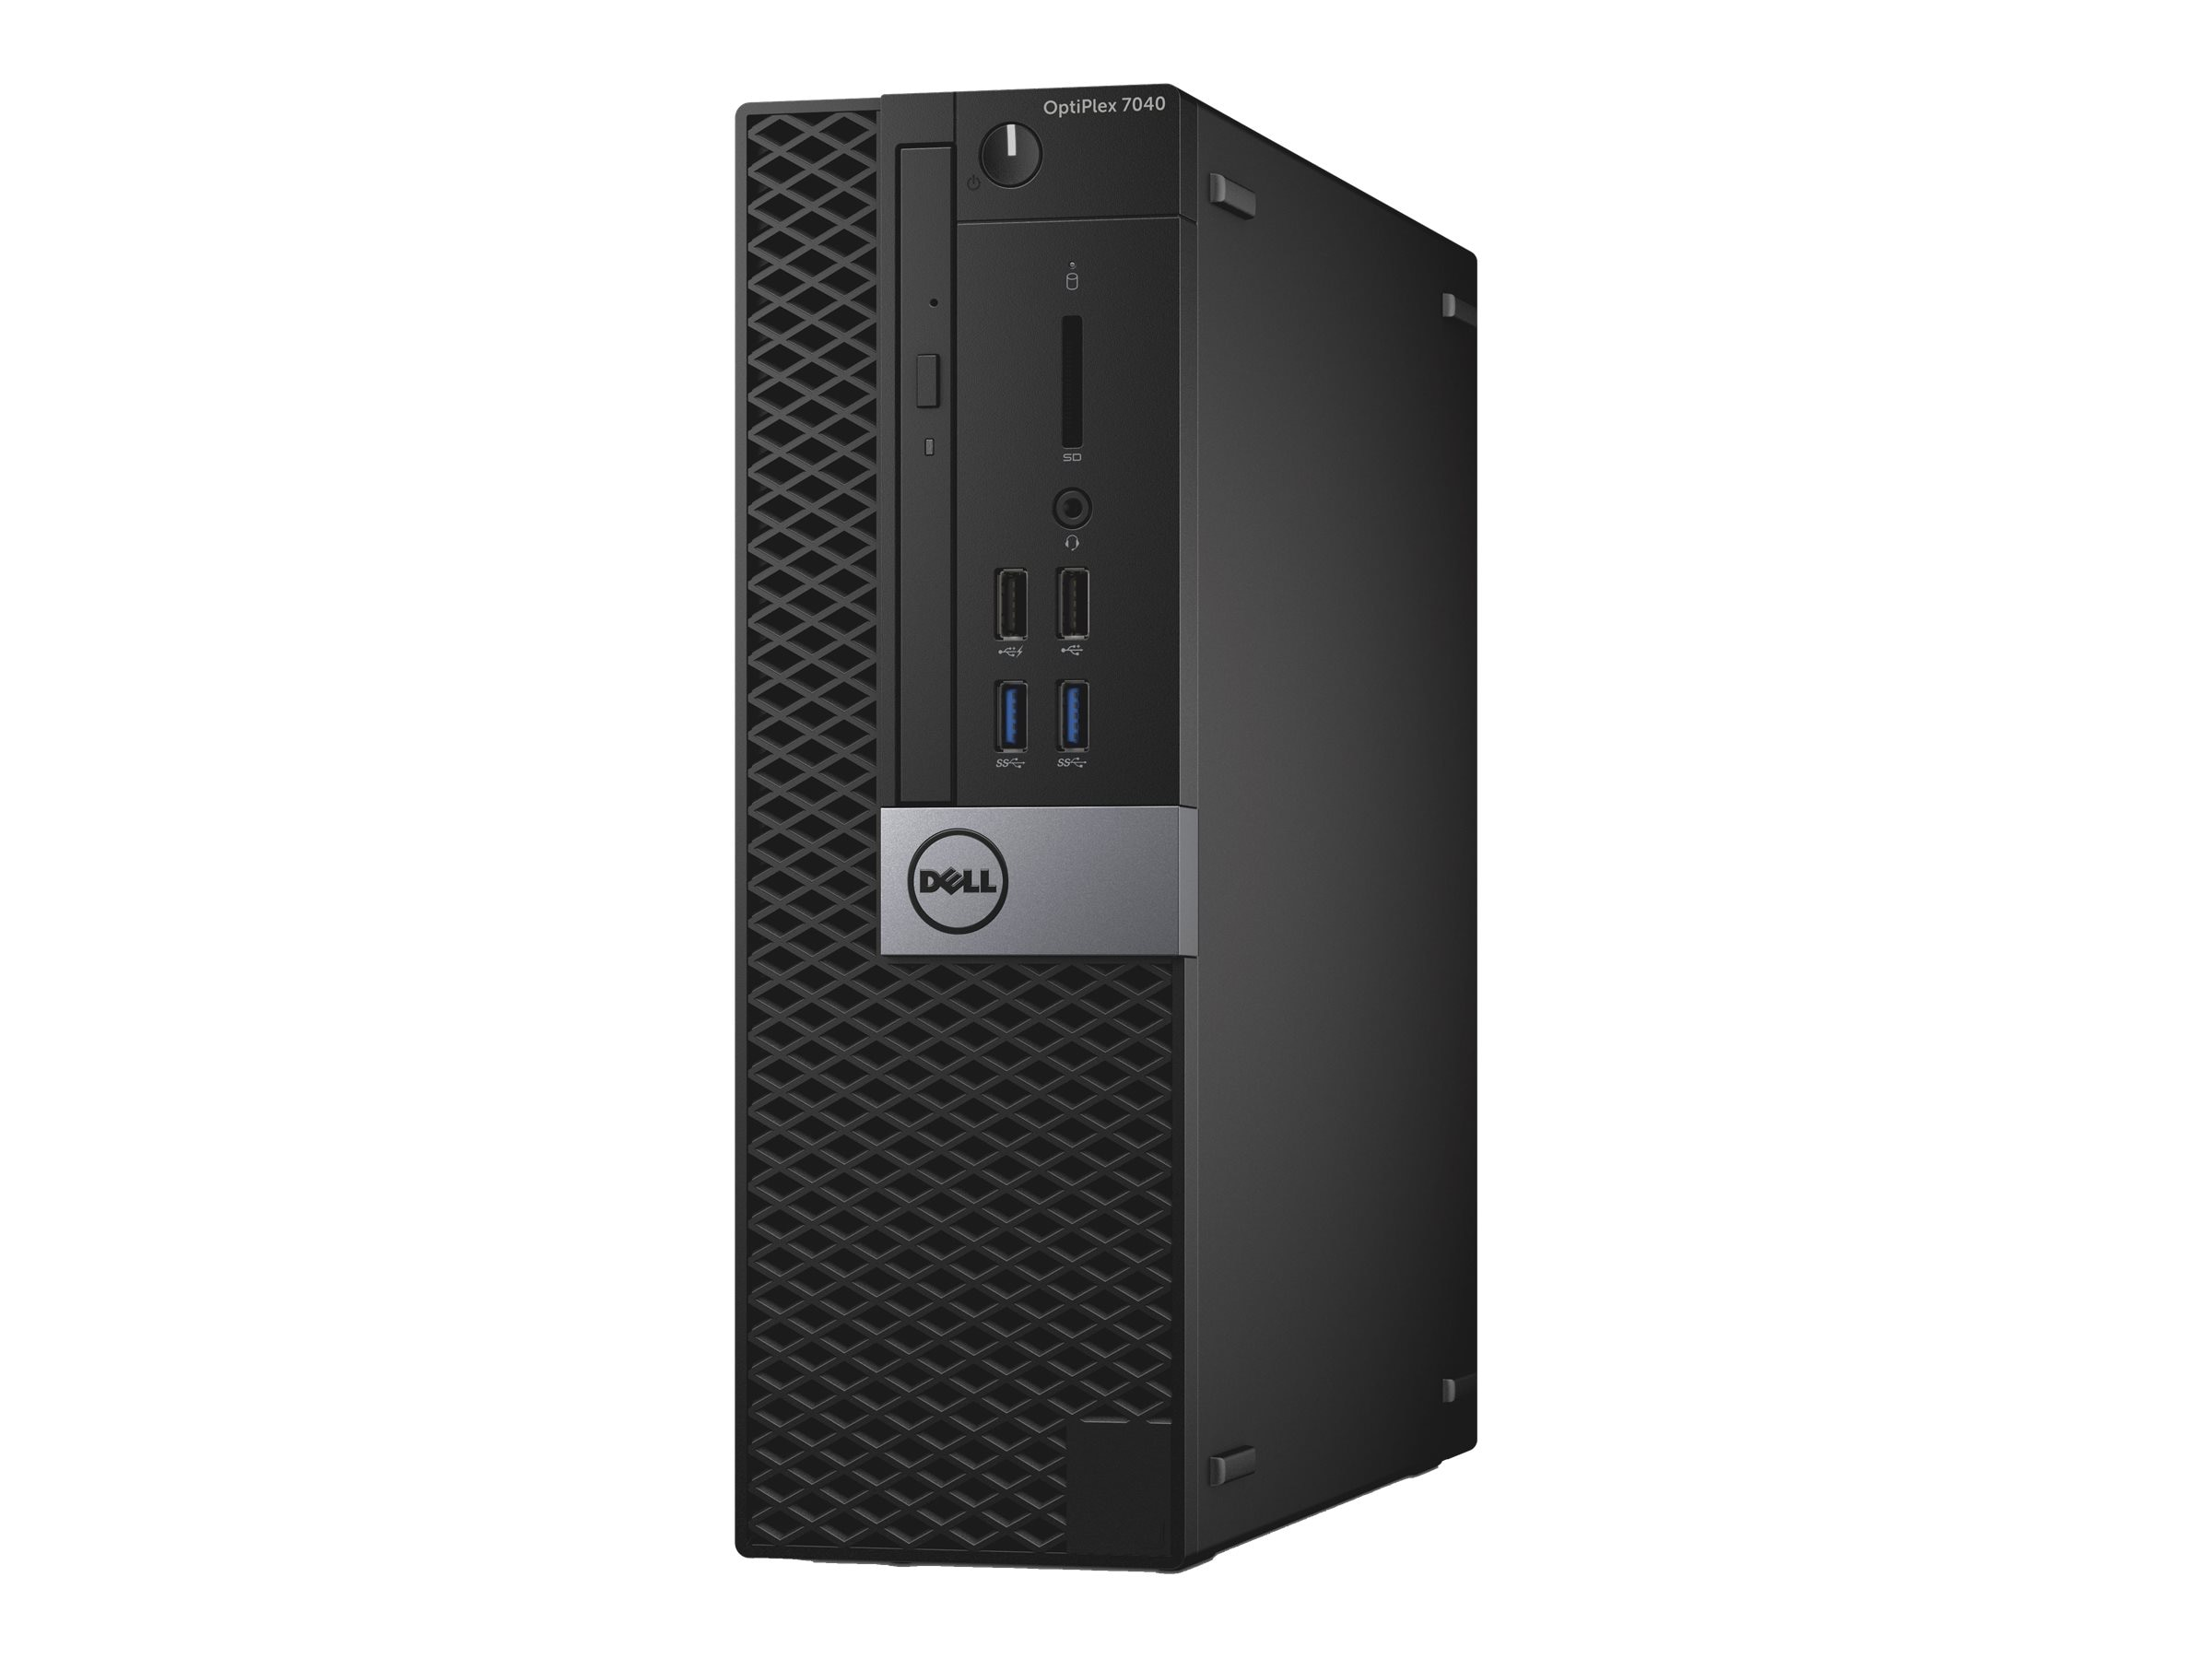 Dell OptiPlex 7040 3.2GHz Core i5 8GB RAM 500GB hard drive, 4KTC1, 30819009, Desktops